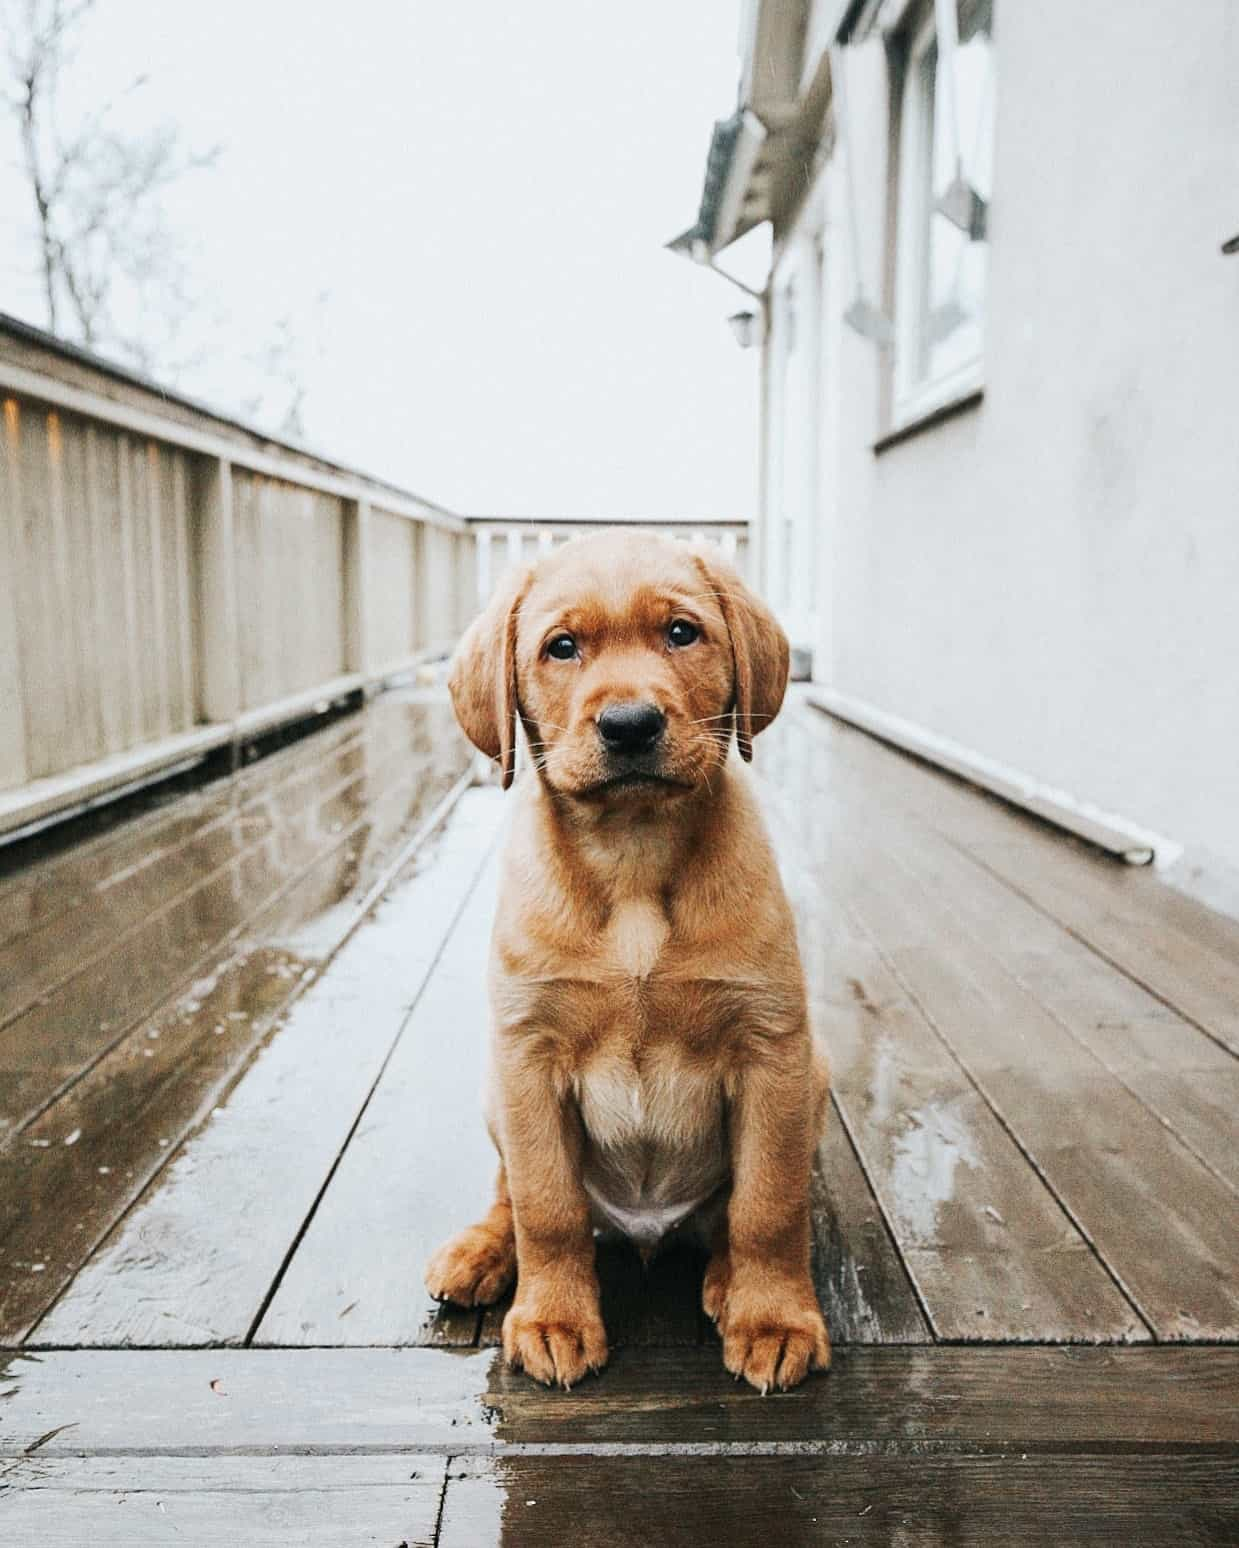 Puppies are beautiful animals, and this one is sitting on a porch.